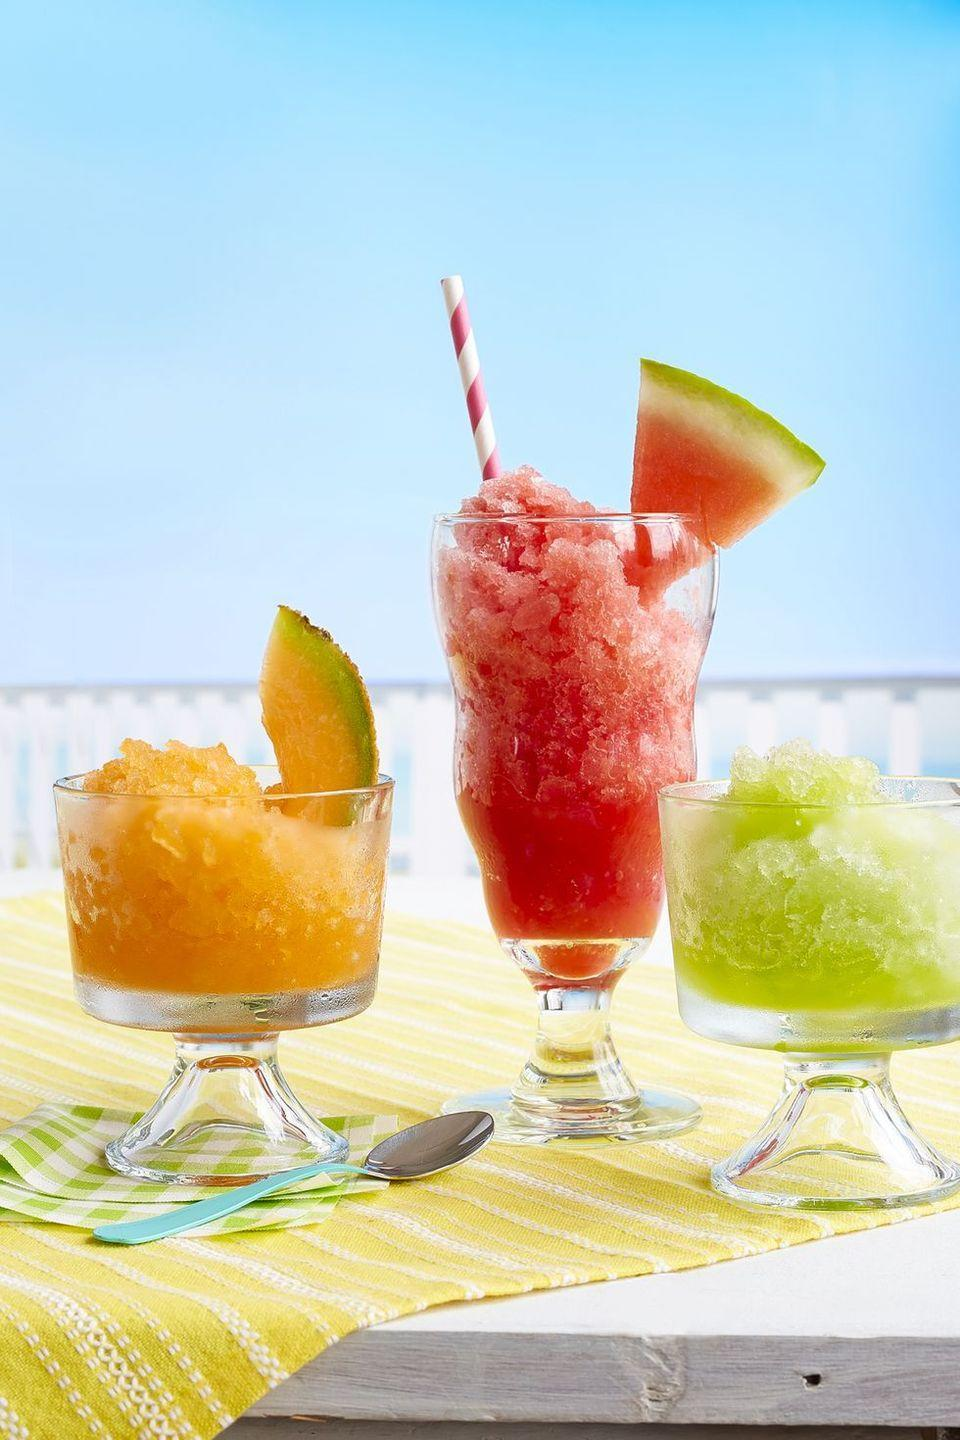 """<p>There's nothing like the cool, refreshing taste of shaved ice in the summer. These fancy flavors of Watermelon-Lime, Honeydew-Ginger-Mint, and Cantaloupe-Basil will be your favorite treat of the summer. </p><p><strong><em><a href=""""https://www.womansday.com/food-recipes/food-drinks/recipes/a59422/summer-melon-slushies-recipe/"""" rel=""""nofollow noopener"""" target=""""_blank"""" data-ylk=""""slk:Get the Summer Melon Slushies recipe."""" class=""""link rapid-noclick-resp"""">Get the Summer Melon Slushies recipe. </a></em></strong></p>"""